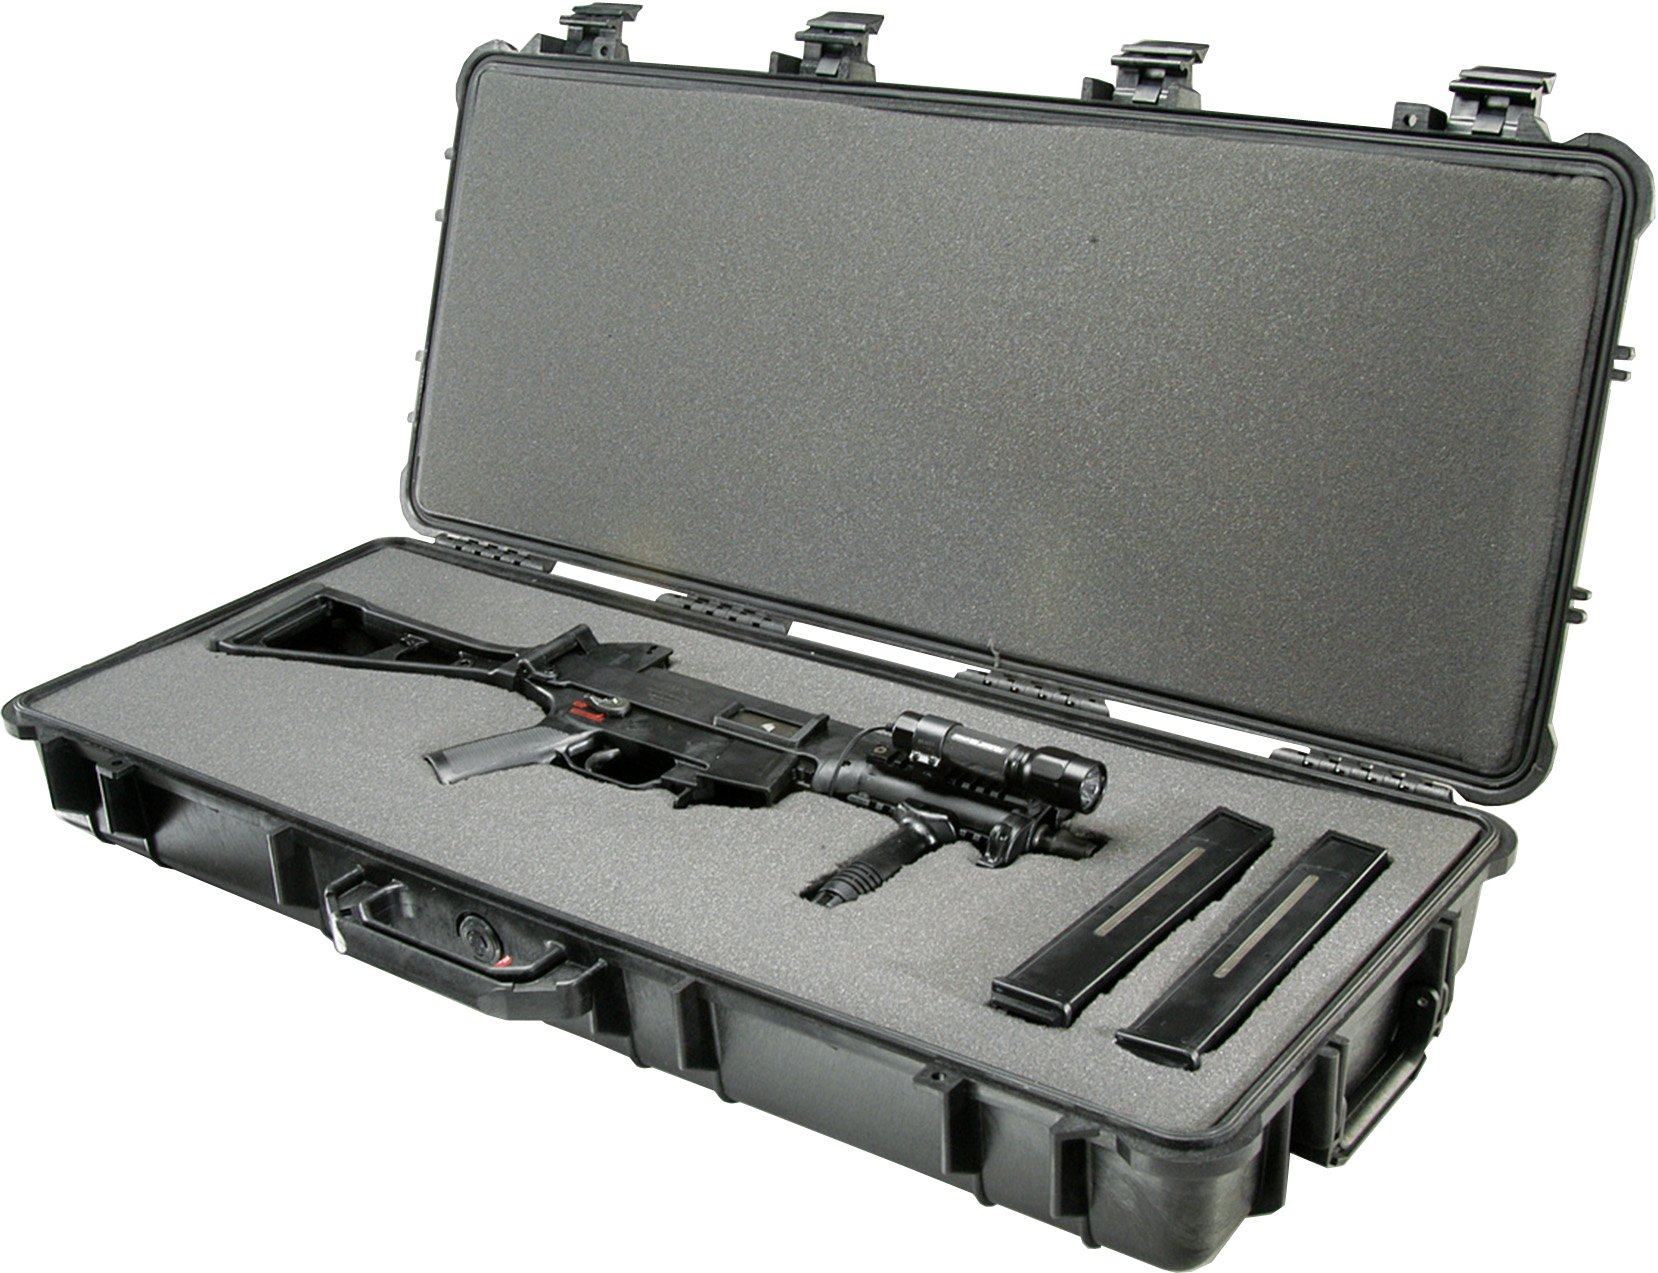 Pelican 1700 Rifle Case With Foam (Black) by Pelican (Image #2)